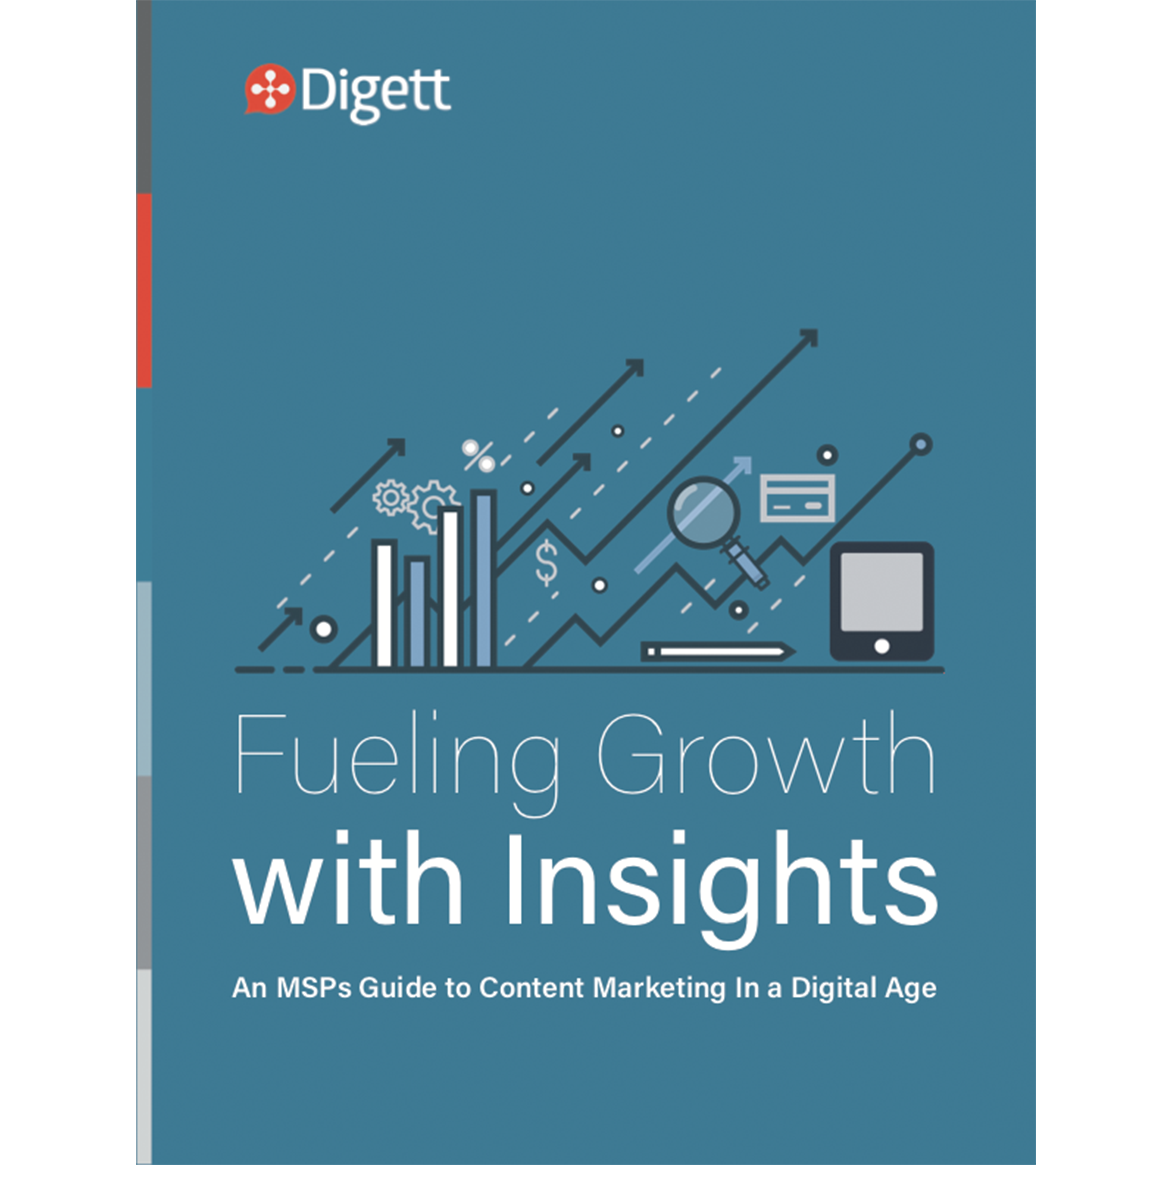 Fueling Growth with Insights: An MSPs Guide to Content Marketing in a Digital Age